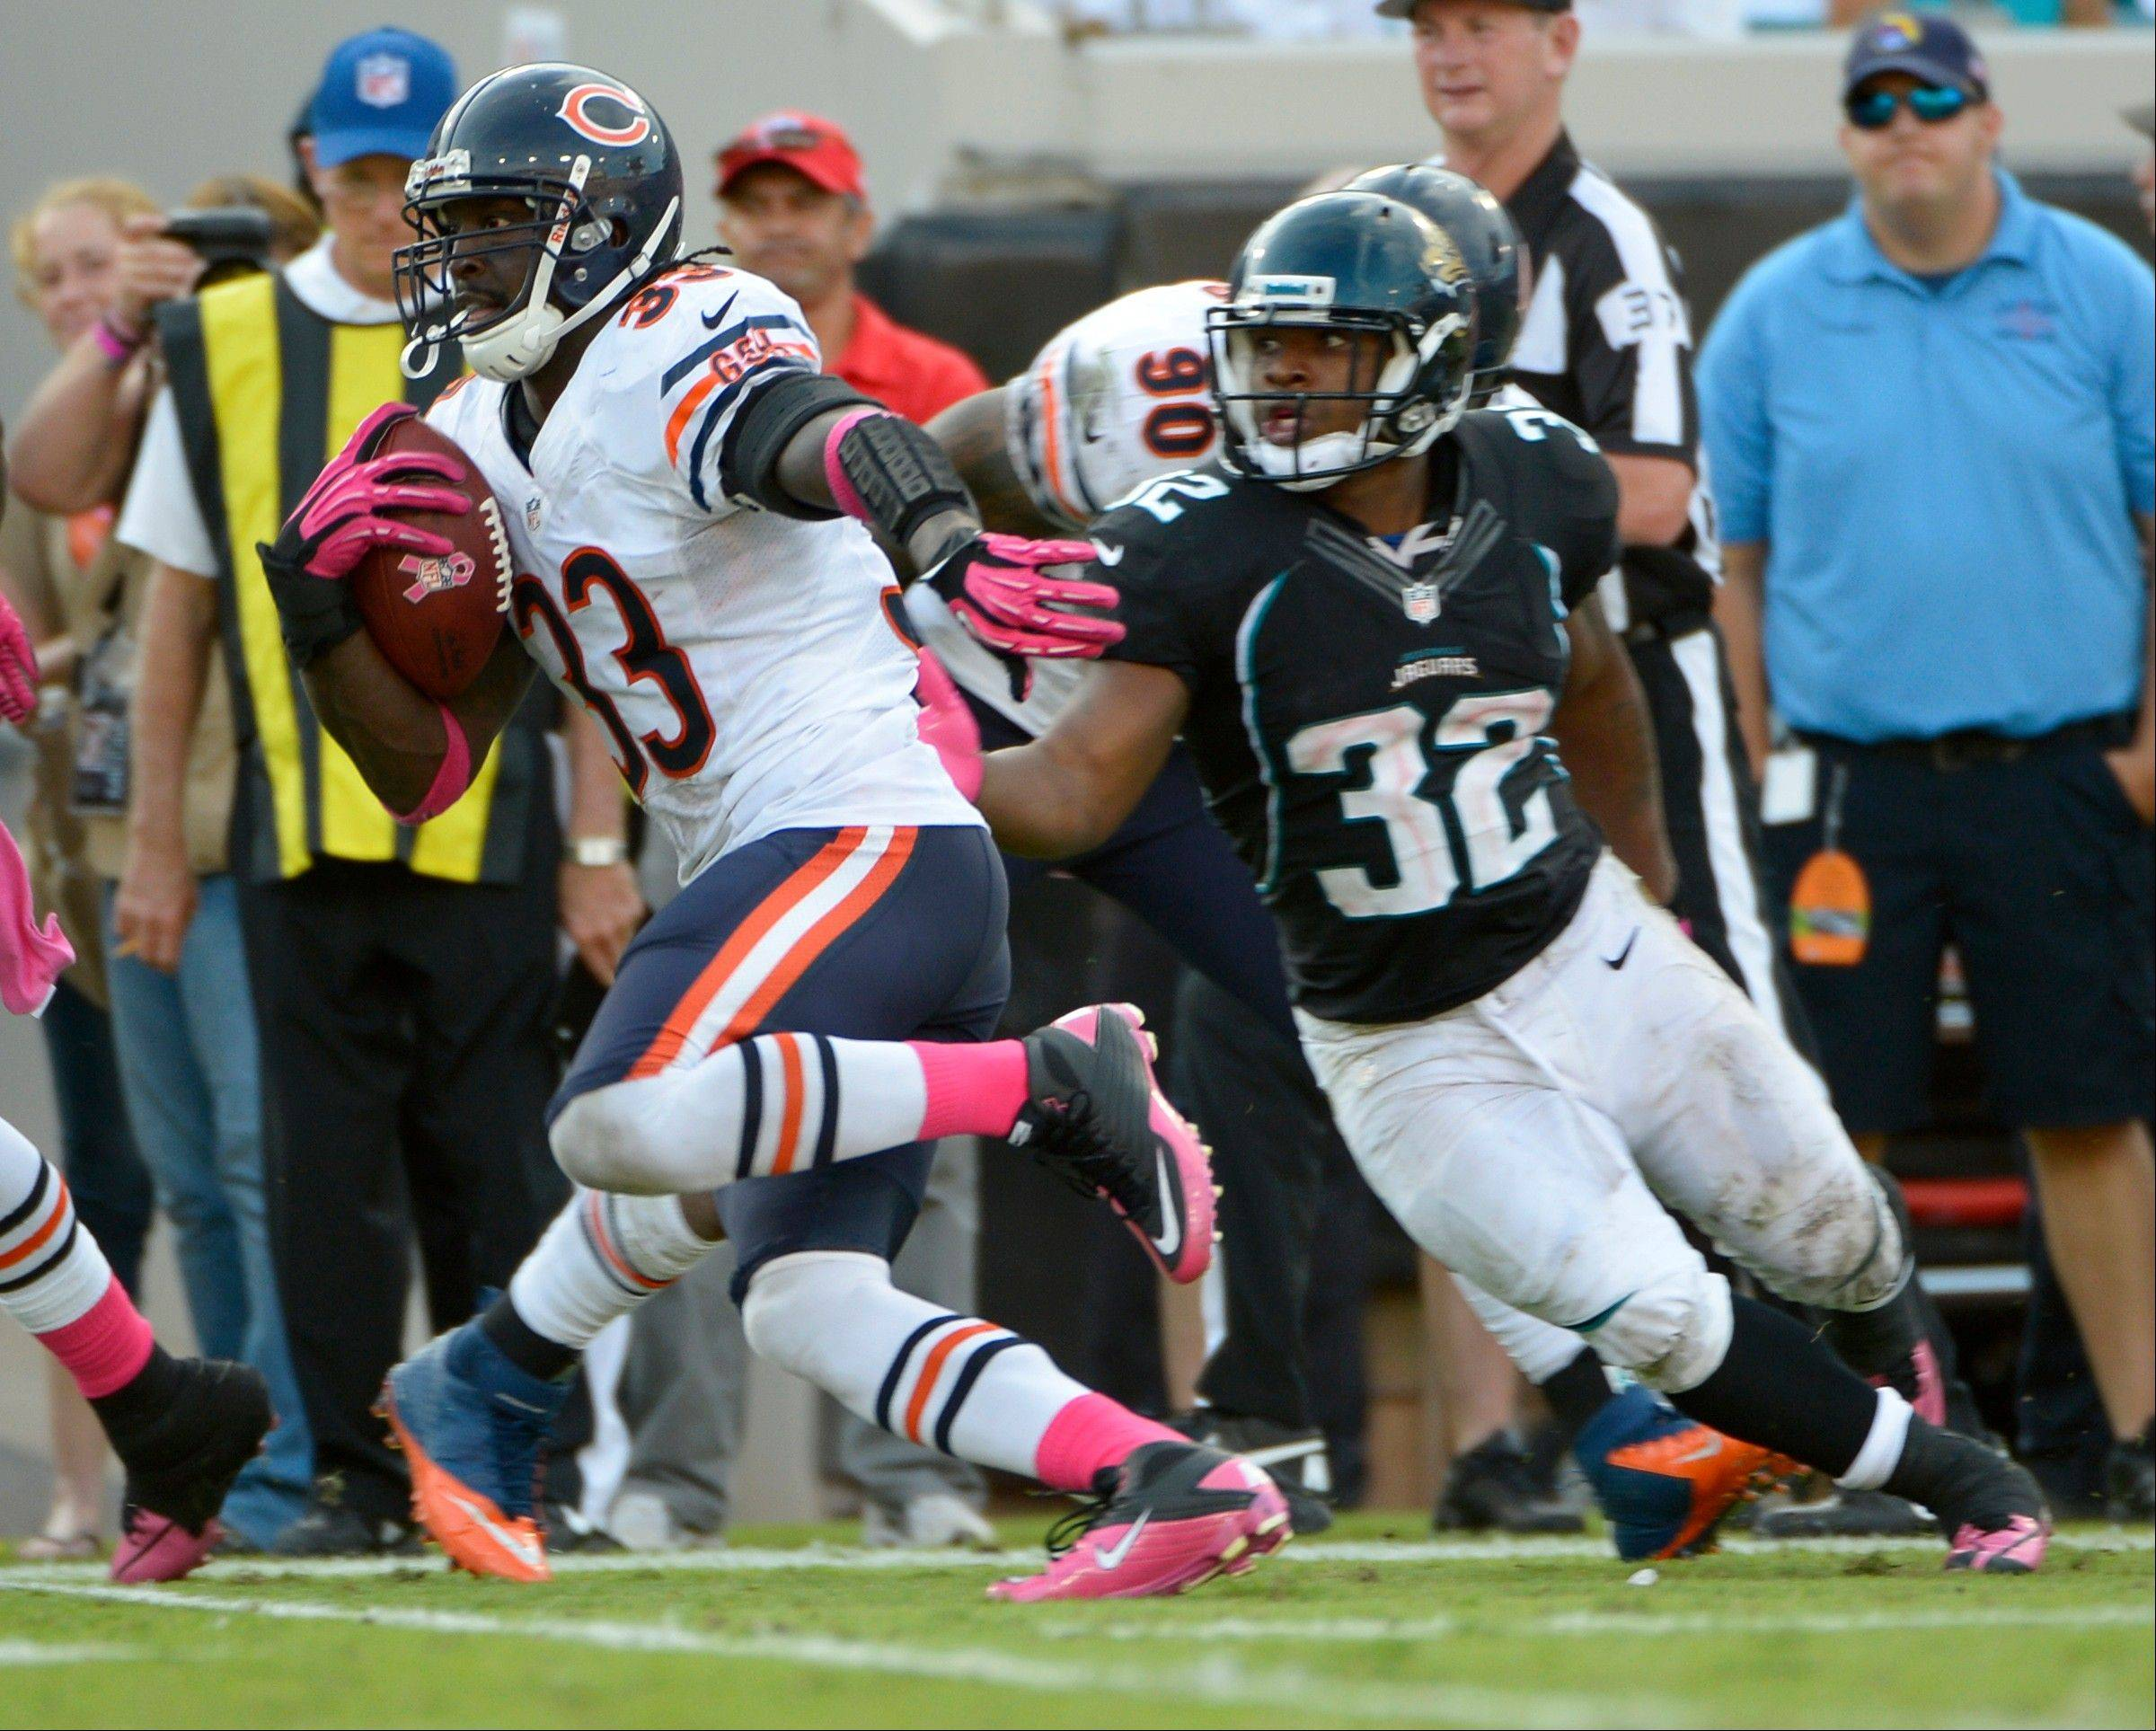 Matt Forte is upended by Jaguars cornerback Rashean Mathis during the first half of the Bears' victory Sunday. Forte was part of a running game that amassed 214 yards.